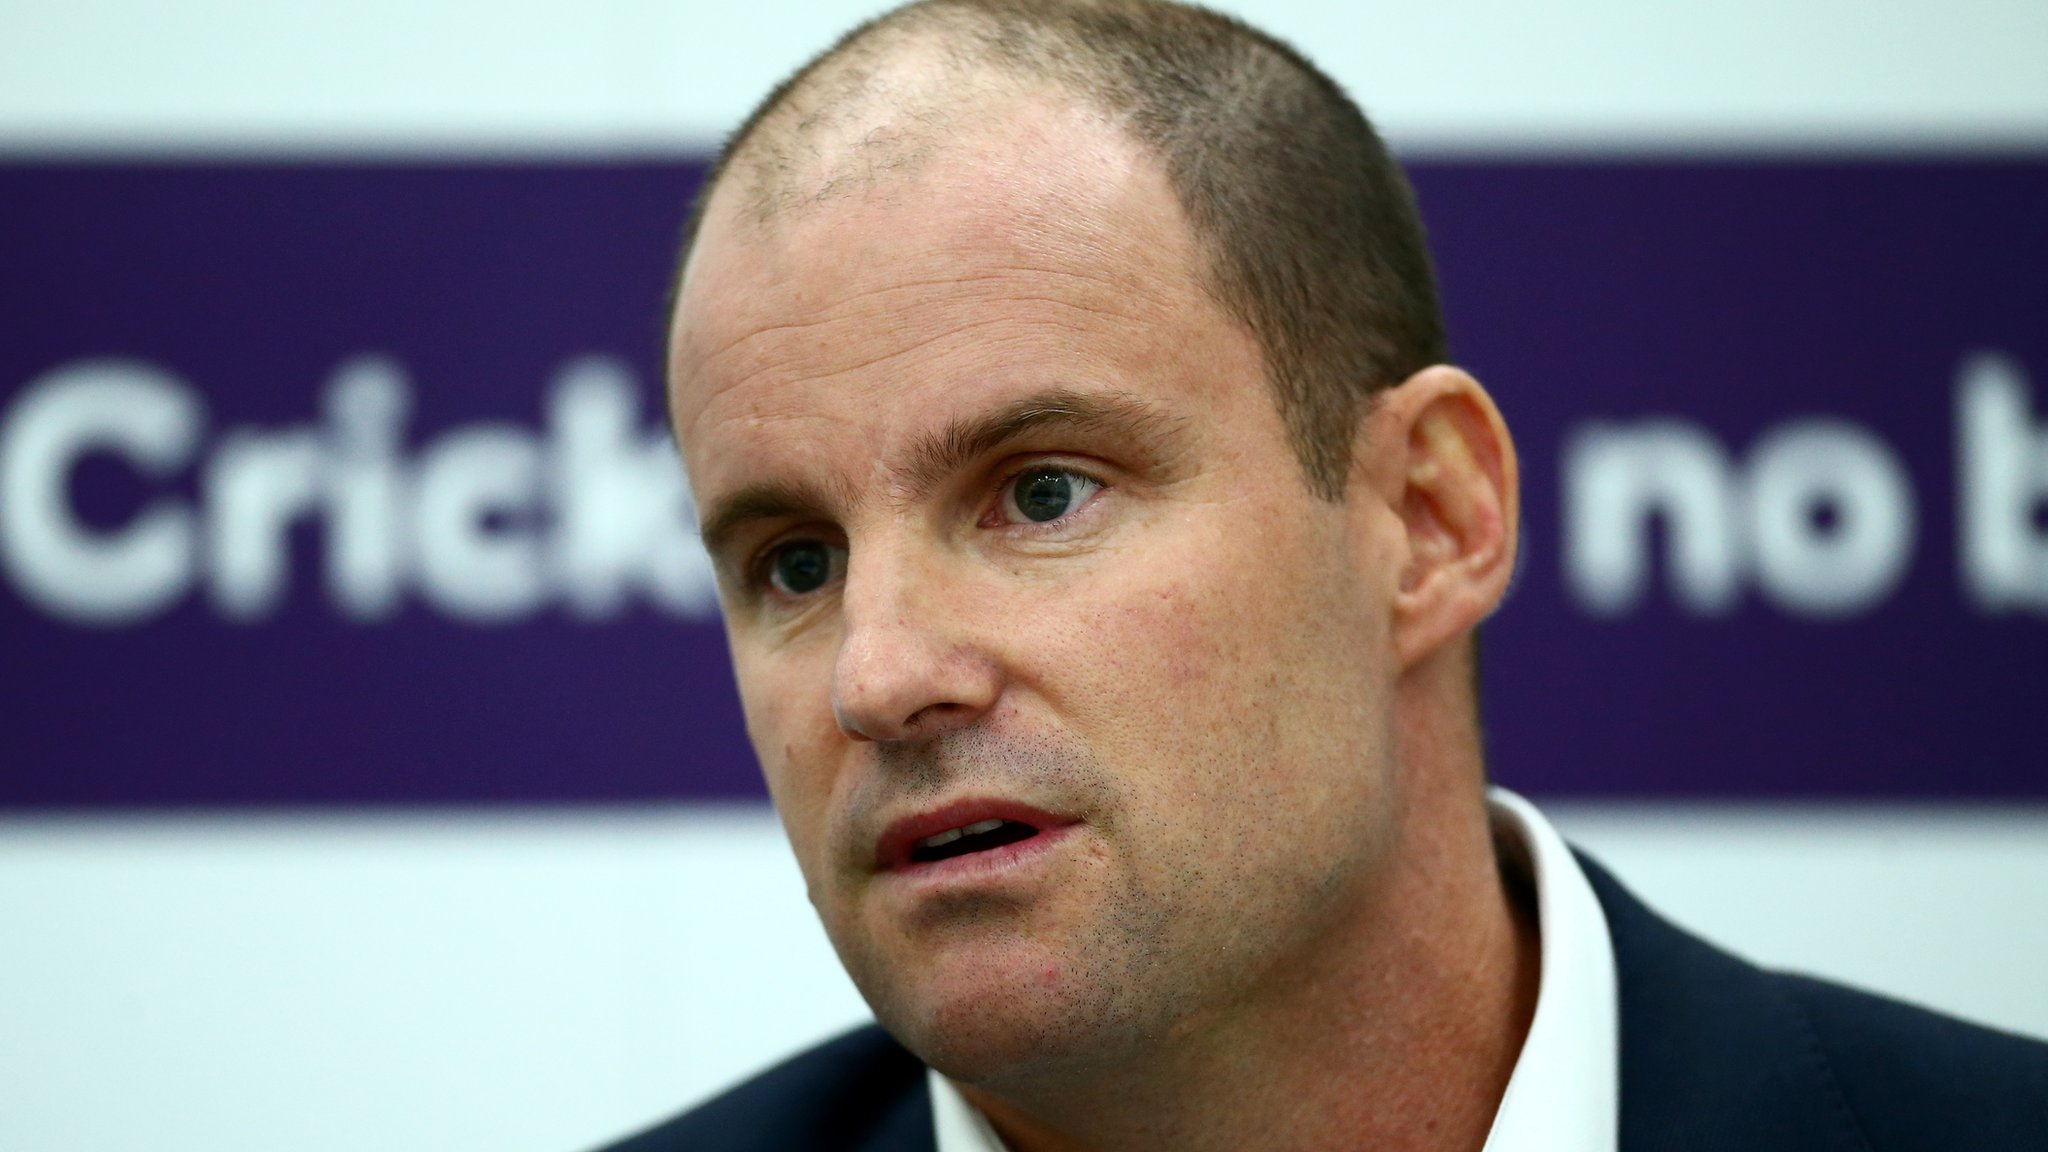 Andrew Strauss: England director of cricket to 'step back' while wife has cancer treatment